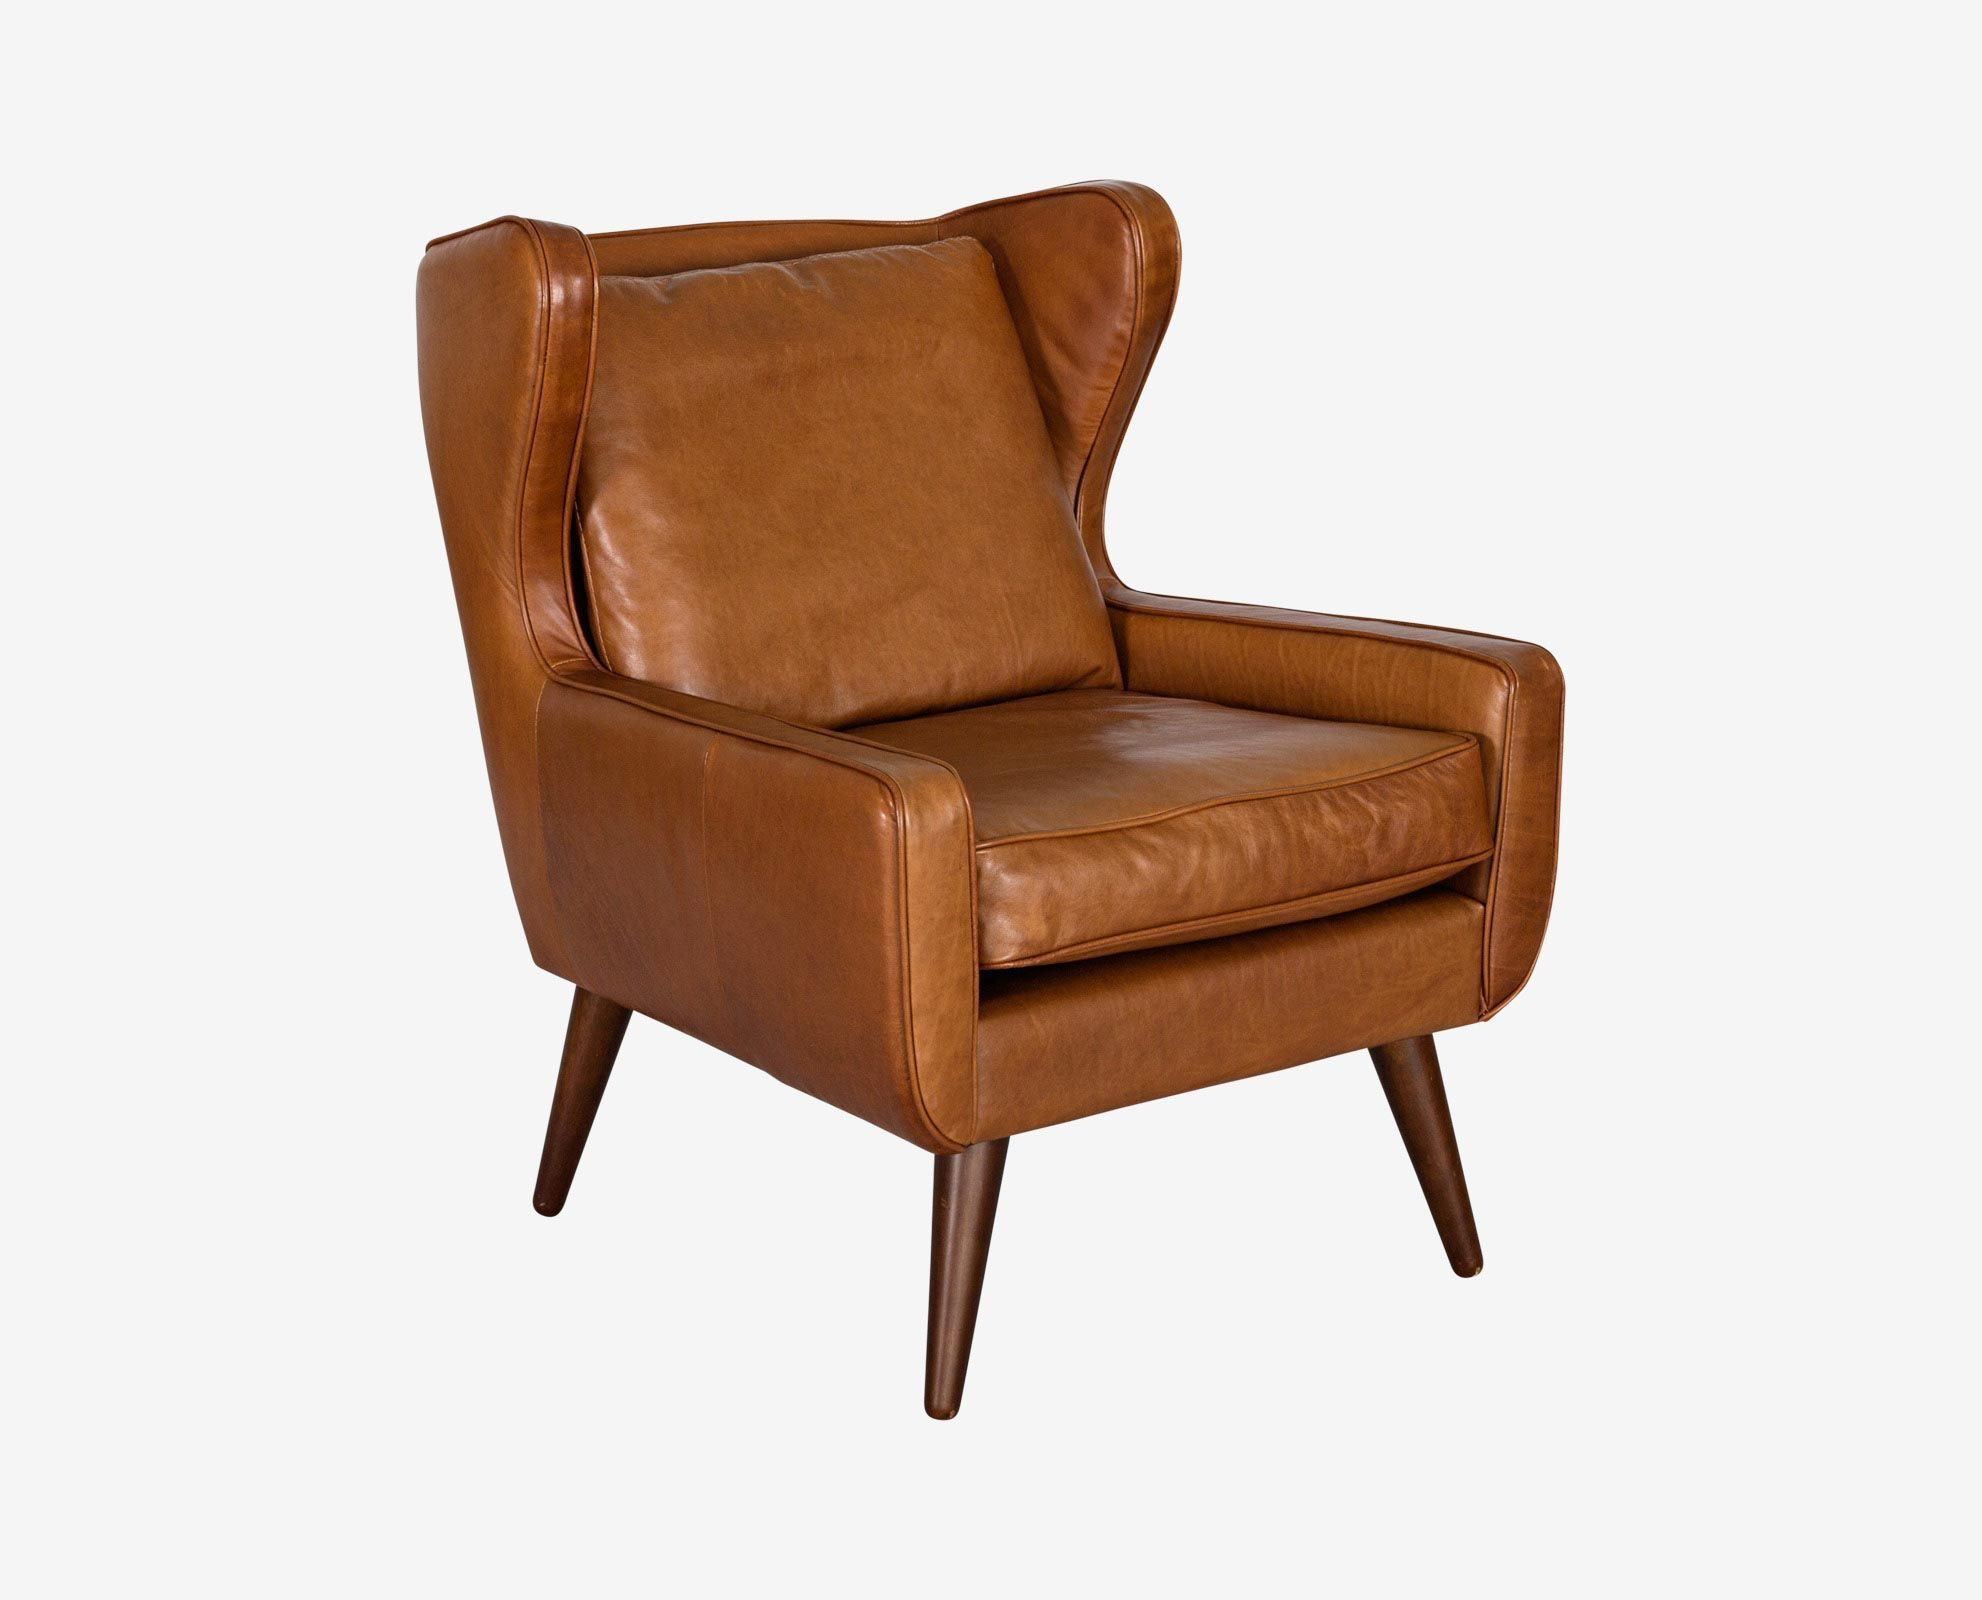 Scandinavian Designs An Updated Take On The Clic Wingback Chair Giesen Leather Makes A Great Addition In Any Home